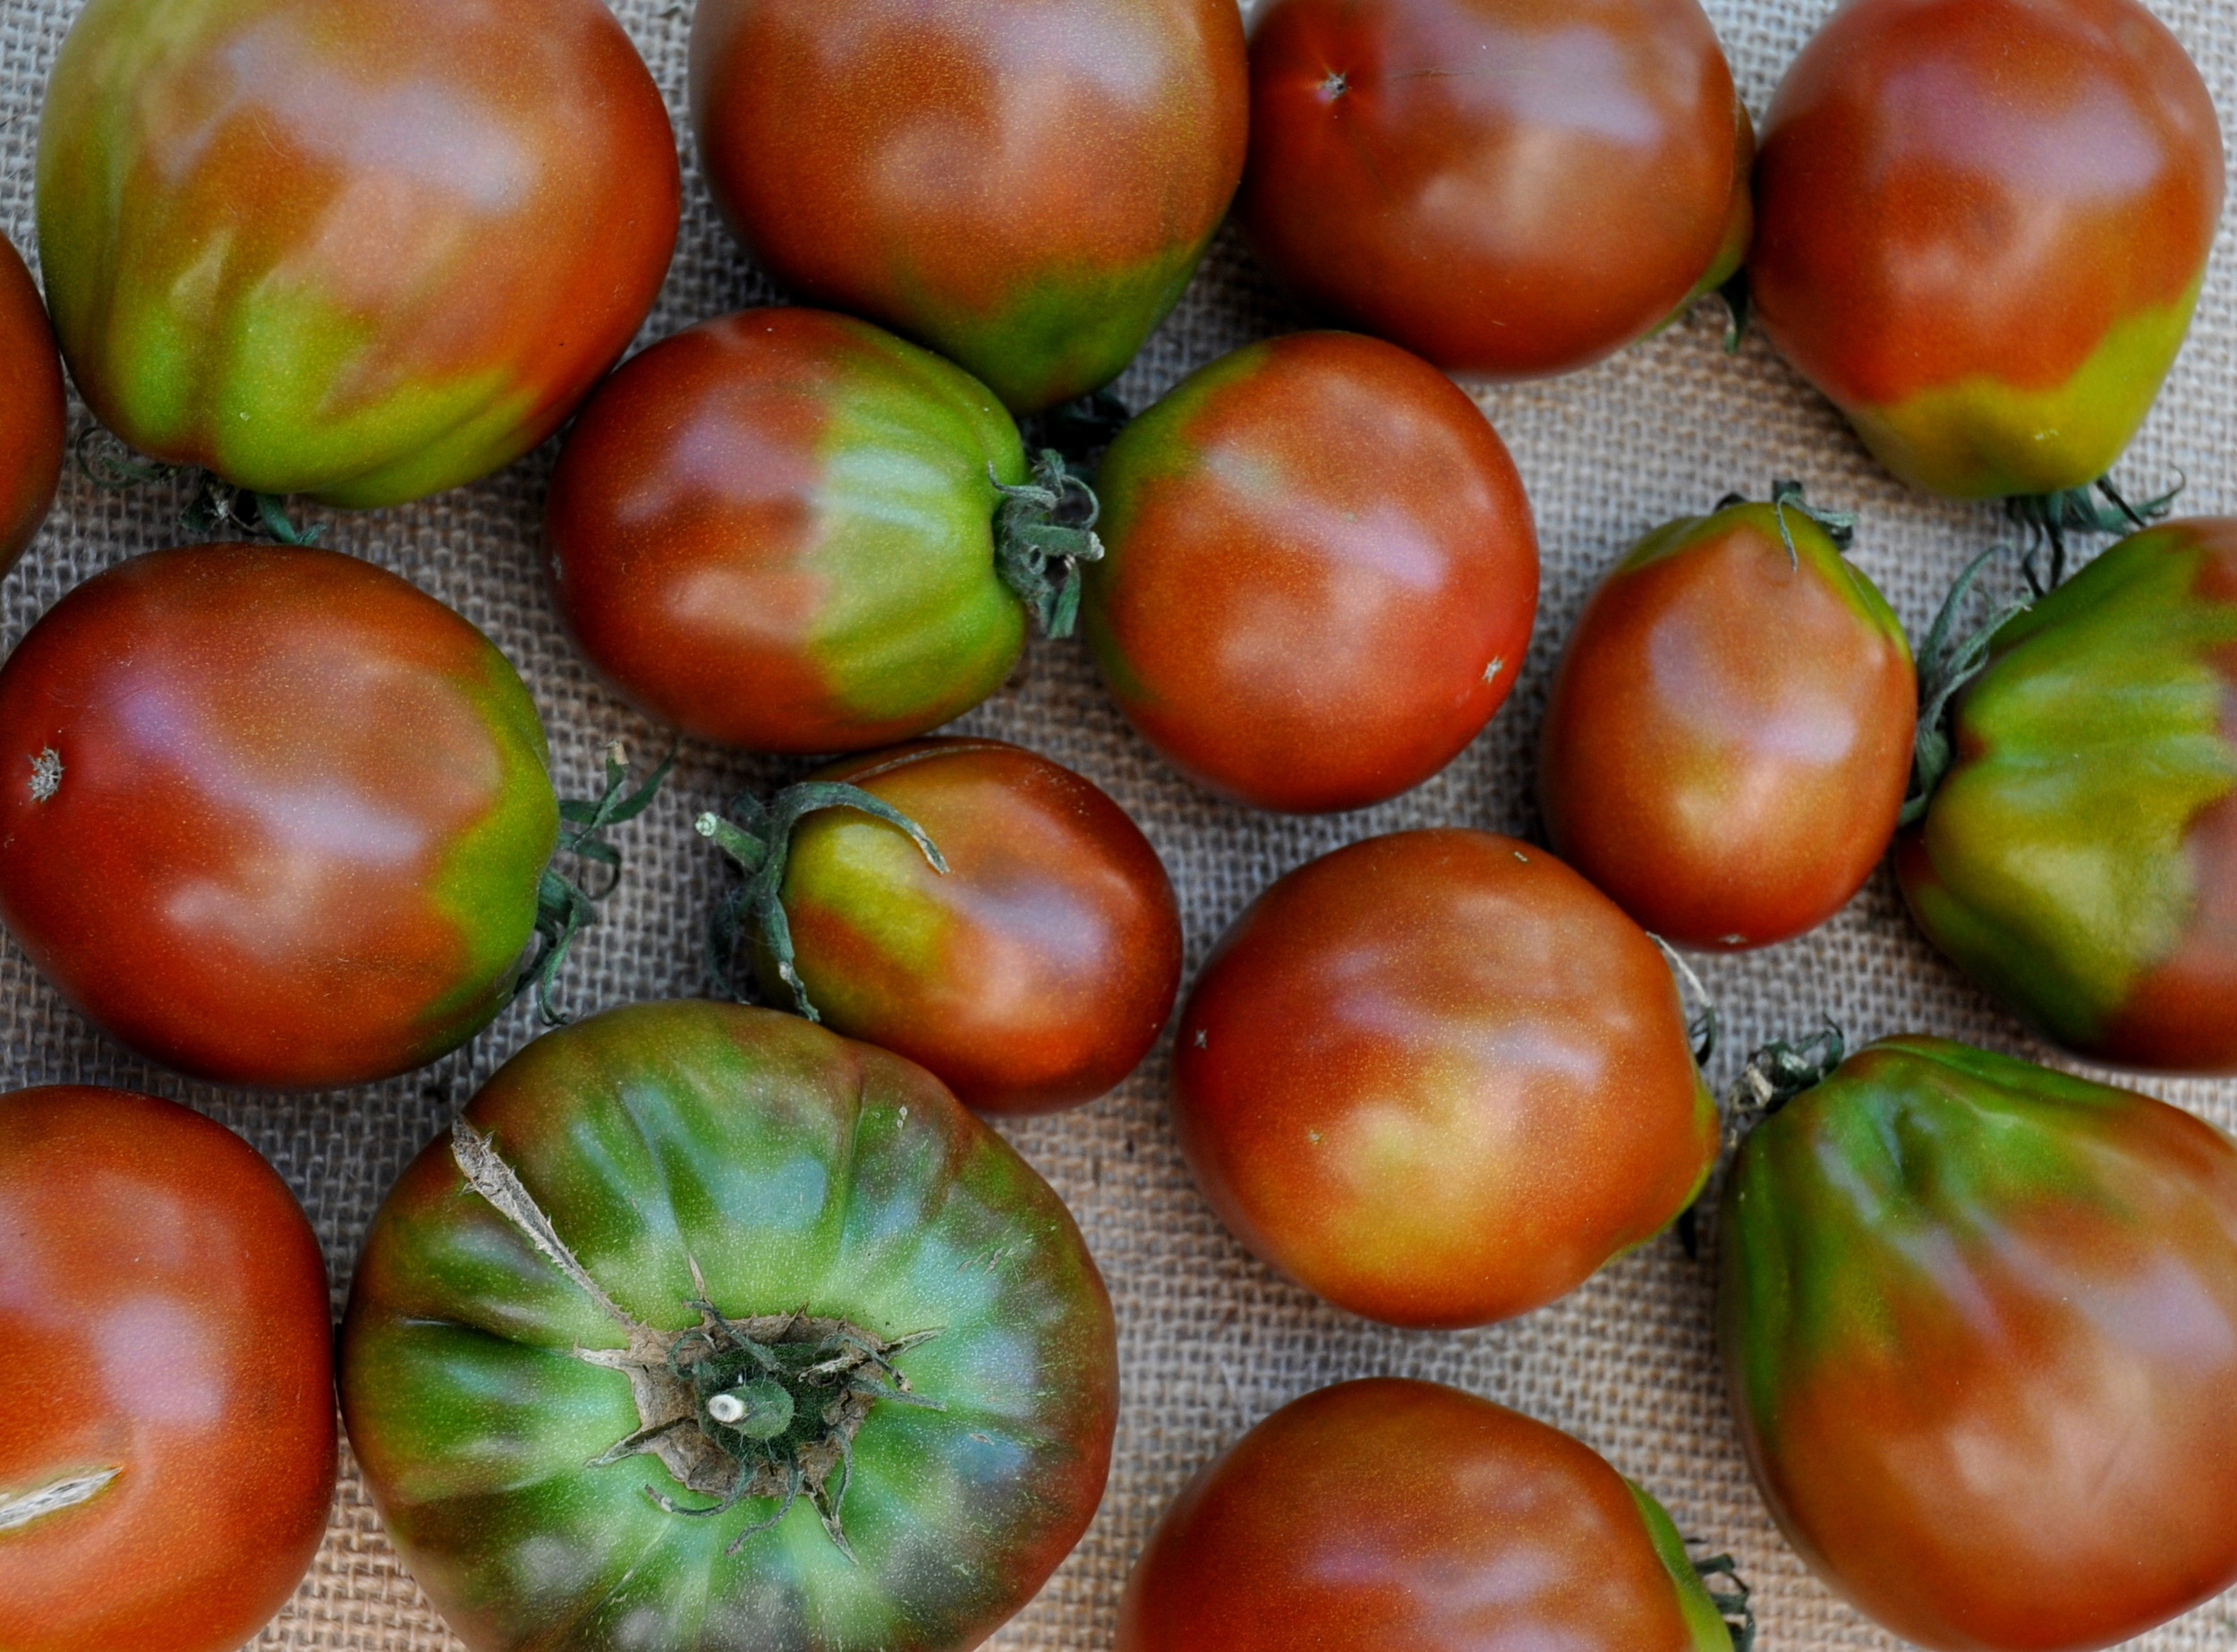 Japanese Black Truffle tomatoes from One Leaf Farm. Photo copyright 2013 by Zachary D. Lyons.